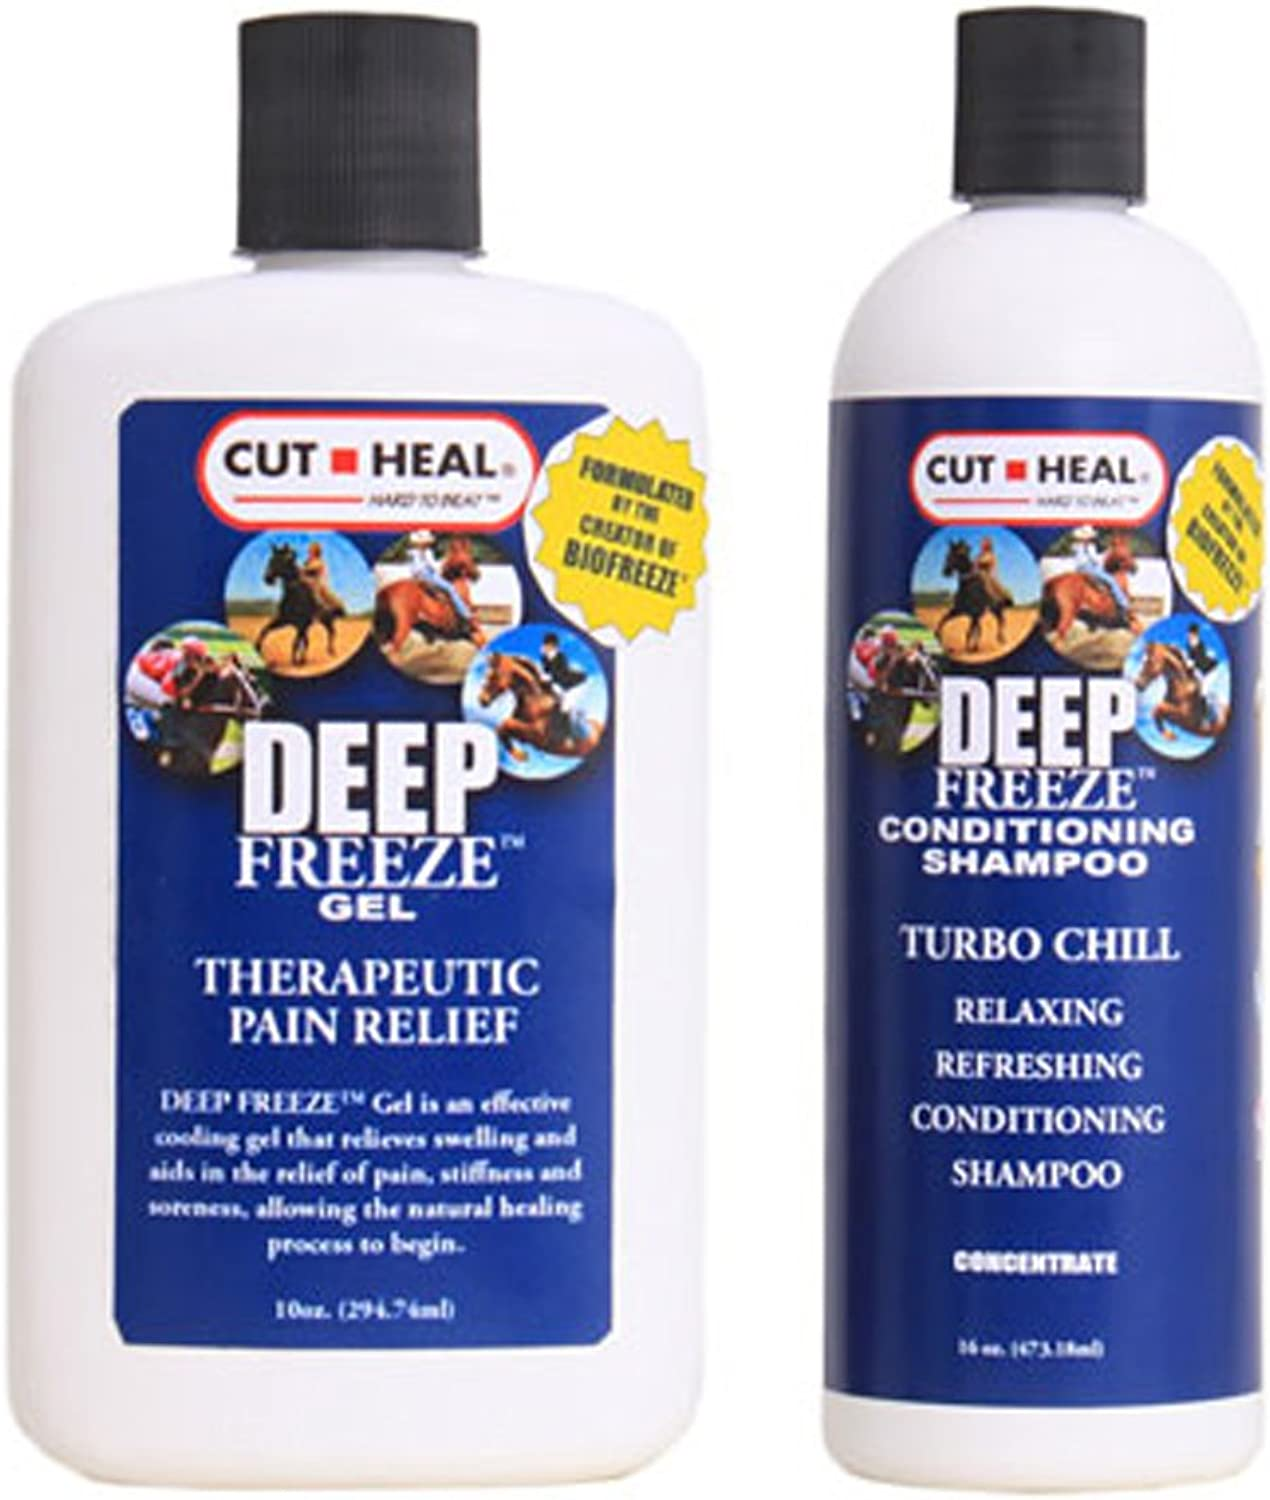 Deep Freeze Conditioning Shampoo Display  0092290  Bci